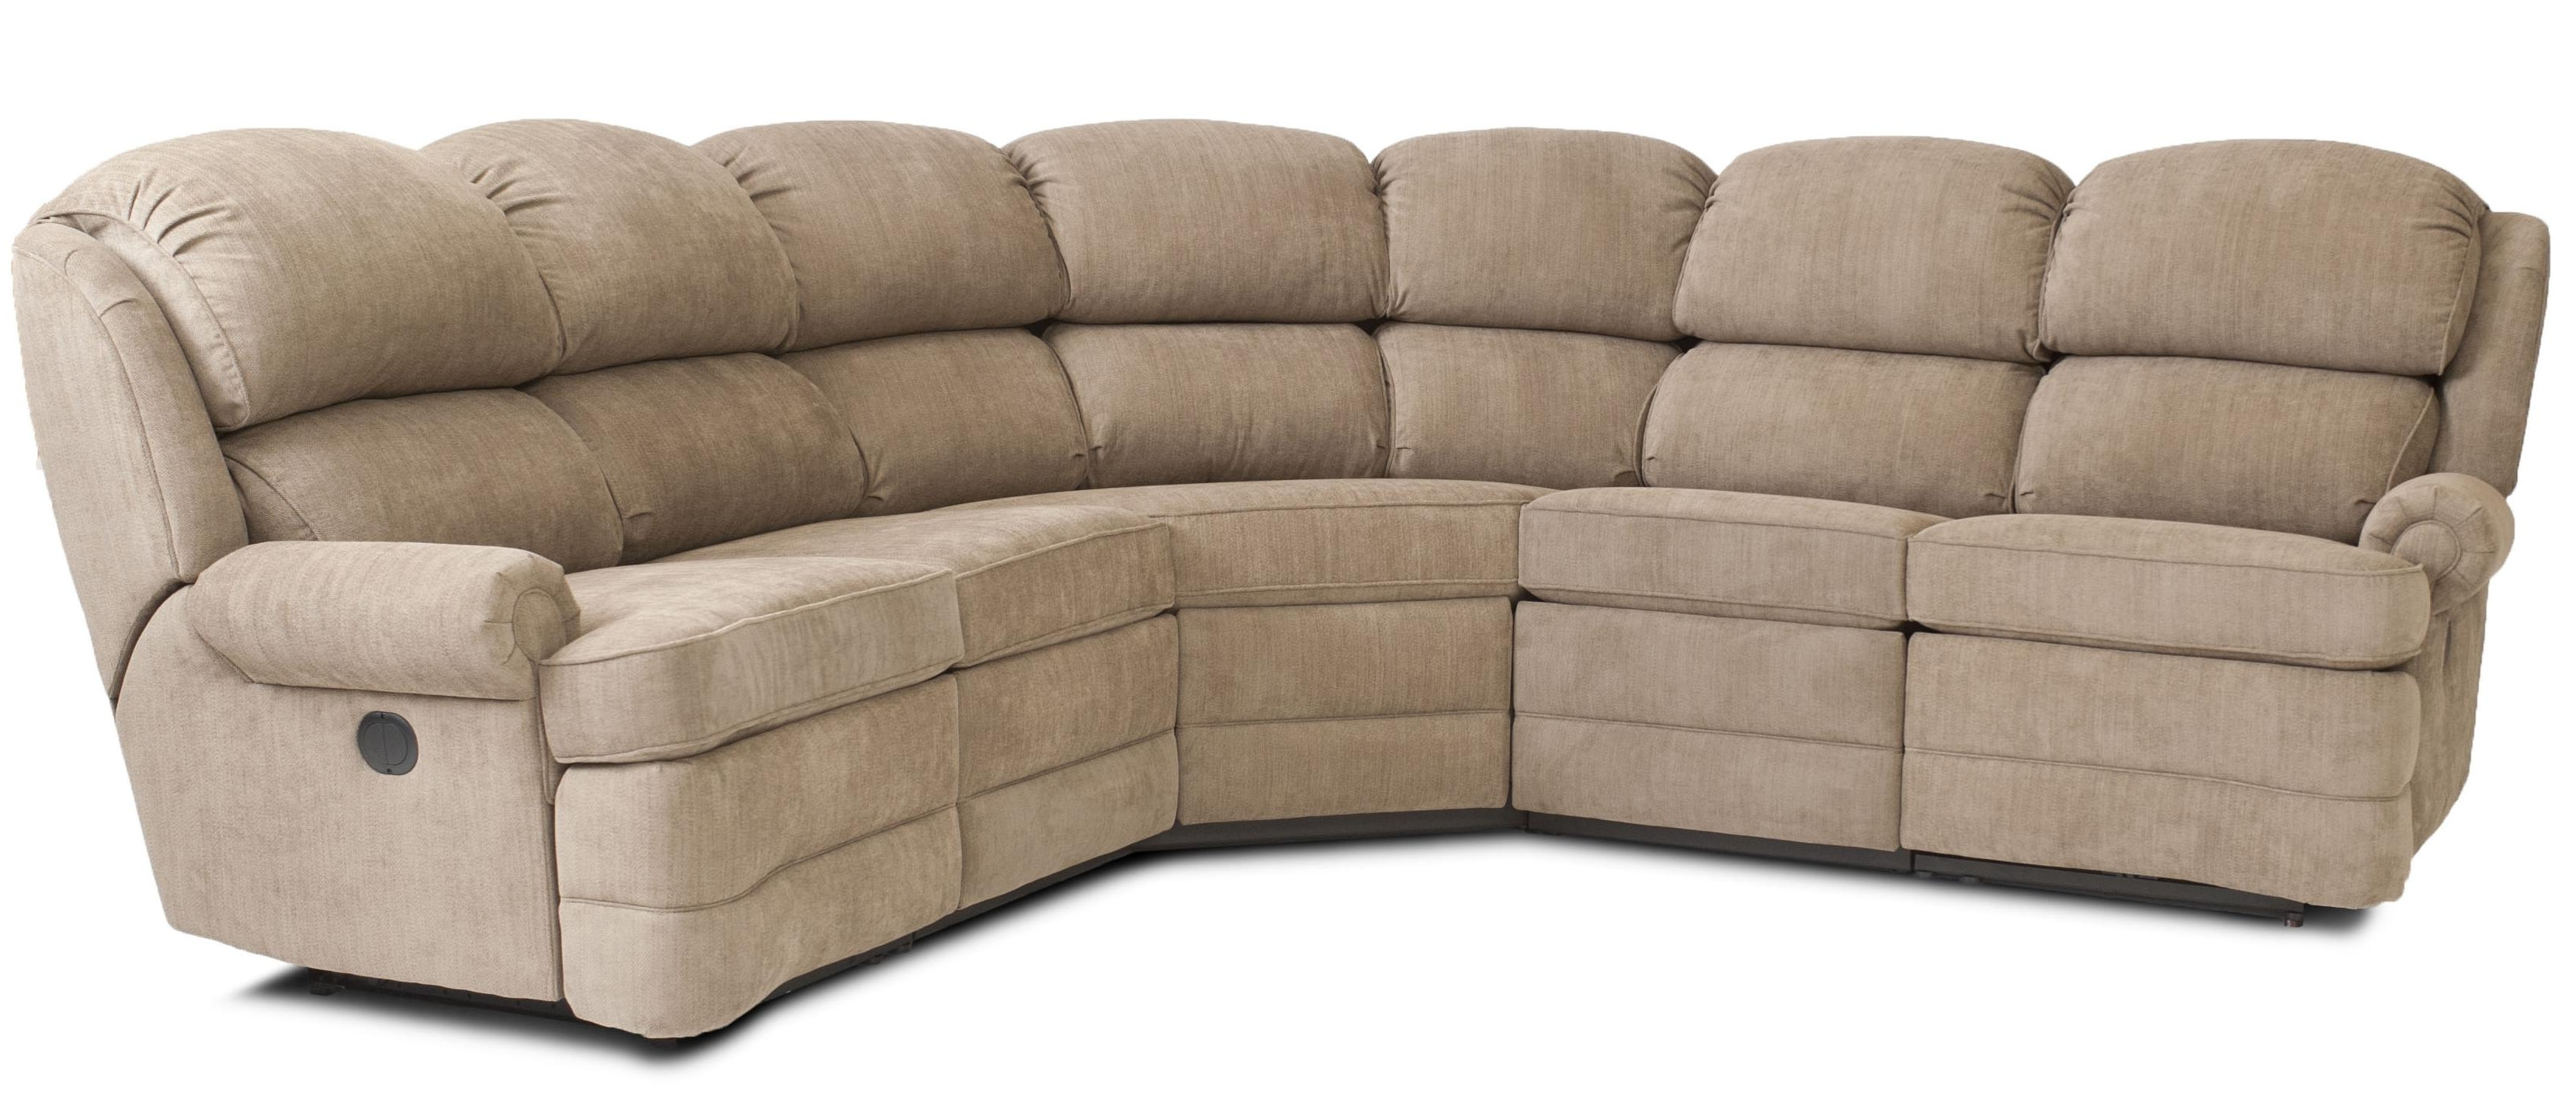 Most Recently Released Beautiful Leather Sectional With Chaise And Recliner Gallery For 10X8 Sectional Sofas (View 11 of 15)